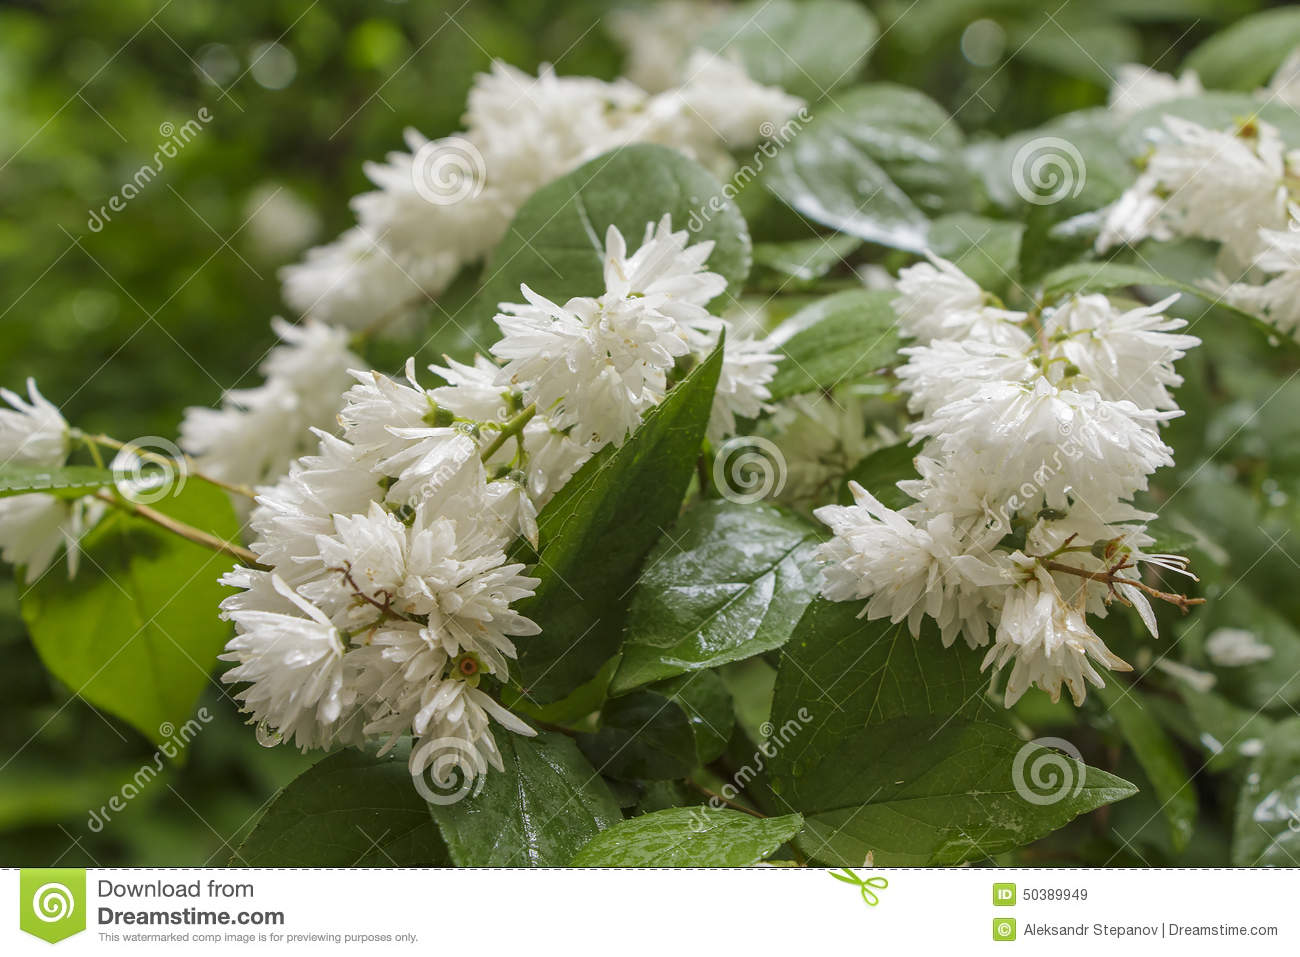 Flowering Shrub With White Flowers In Rainy Weather Stock Image